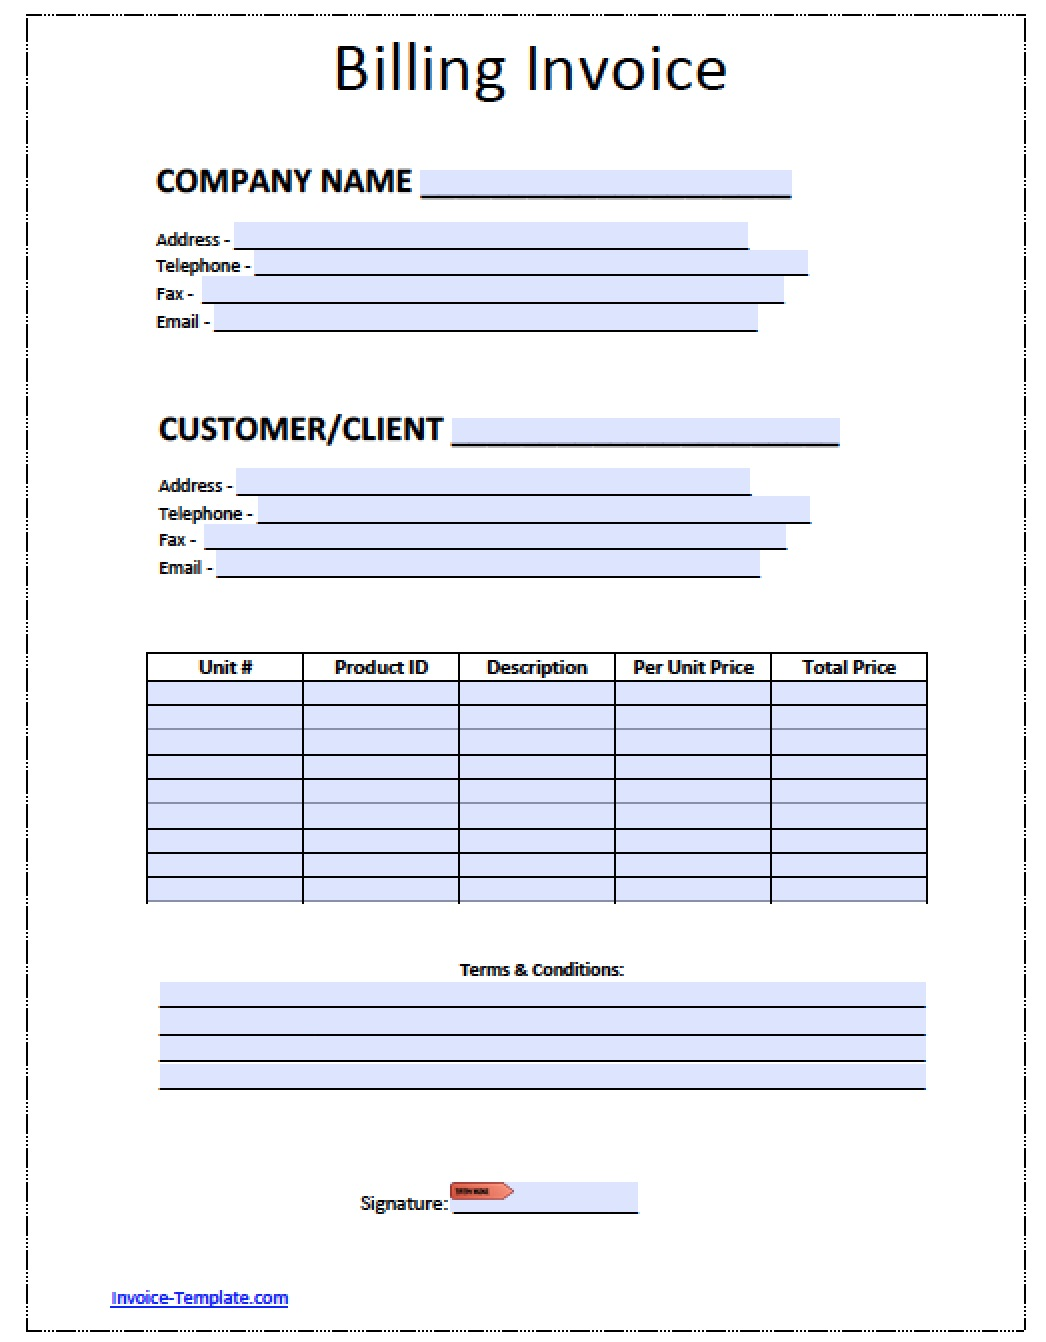 Gpwaus  Wonderful Billing Invoice Invoices Faq U Cloudflare Support Billing  With Entrancing Free Billing Invoice Template  Excel  Pdf  Word Doc  Billing With Amazing Microsoft Word Invoice Template Free Download Also Sending An Invoice On Paypal In Addition How To Email An Invoice And Pro Forma Invoice Template As Well As Invoice Quickbooks Additionally What Is A Tax Invoice From Happytomco With Gpwaus  Entrancing Billing Invoice Invoices Faq U Cloudflare Support Billing  With Amazing Free Billing Invoice Template  Excel  Pdf  Word Doc  Billing And Wonderful Microsoft Word Invoice Template Free Download Also Sending An Invoice On Paypal In Addition How To Email An Invoice From Happytomco